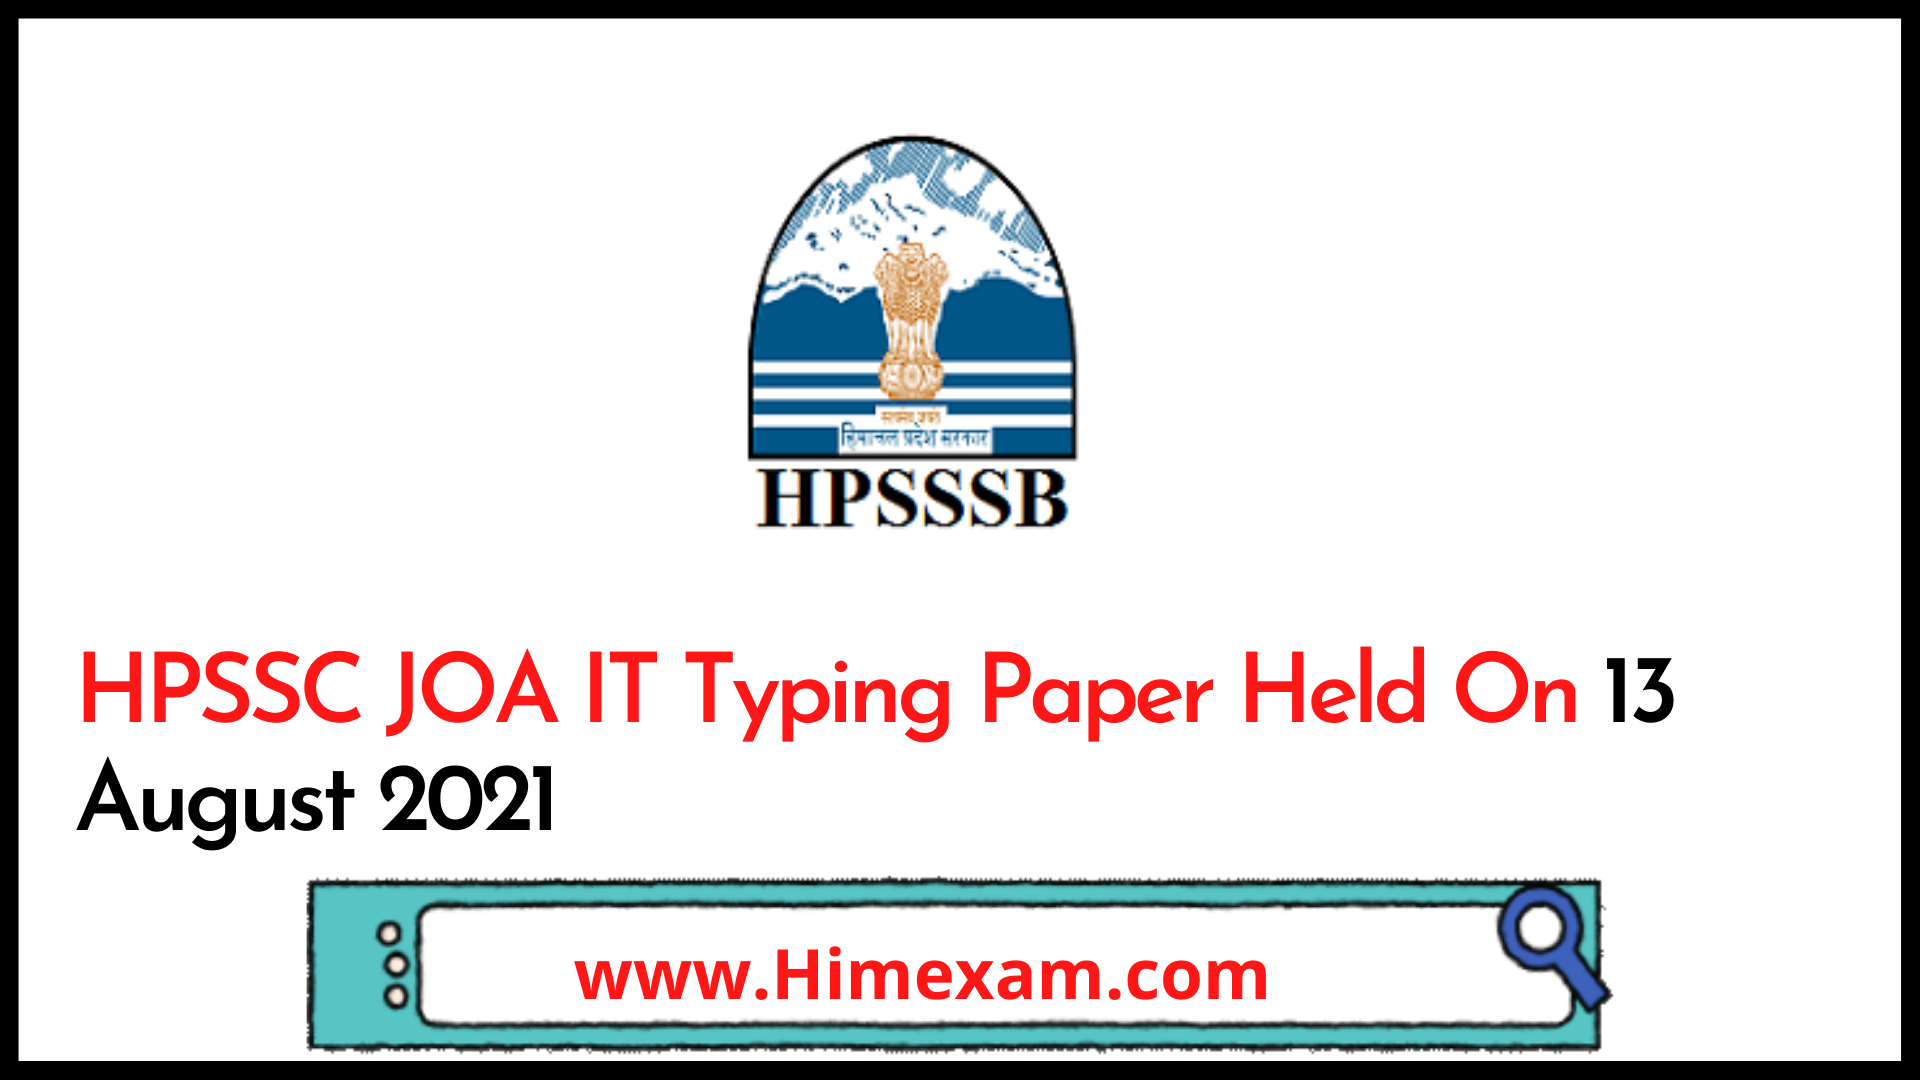 HPSSC JOA IT Typing Paper Held On 13 August 2021